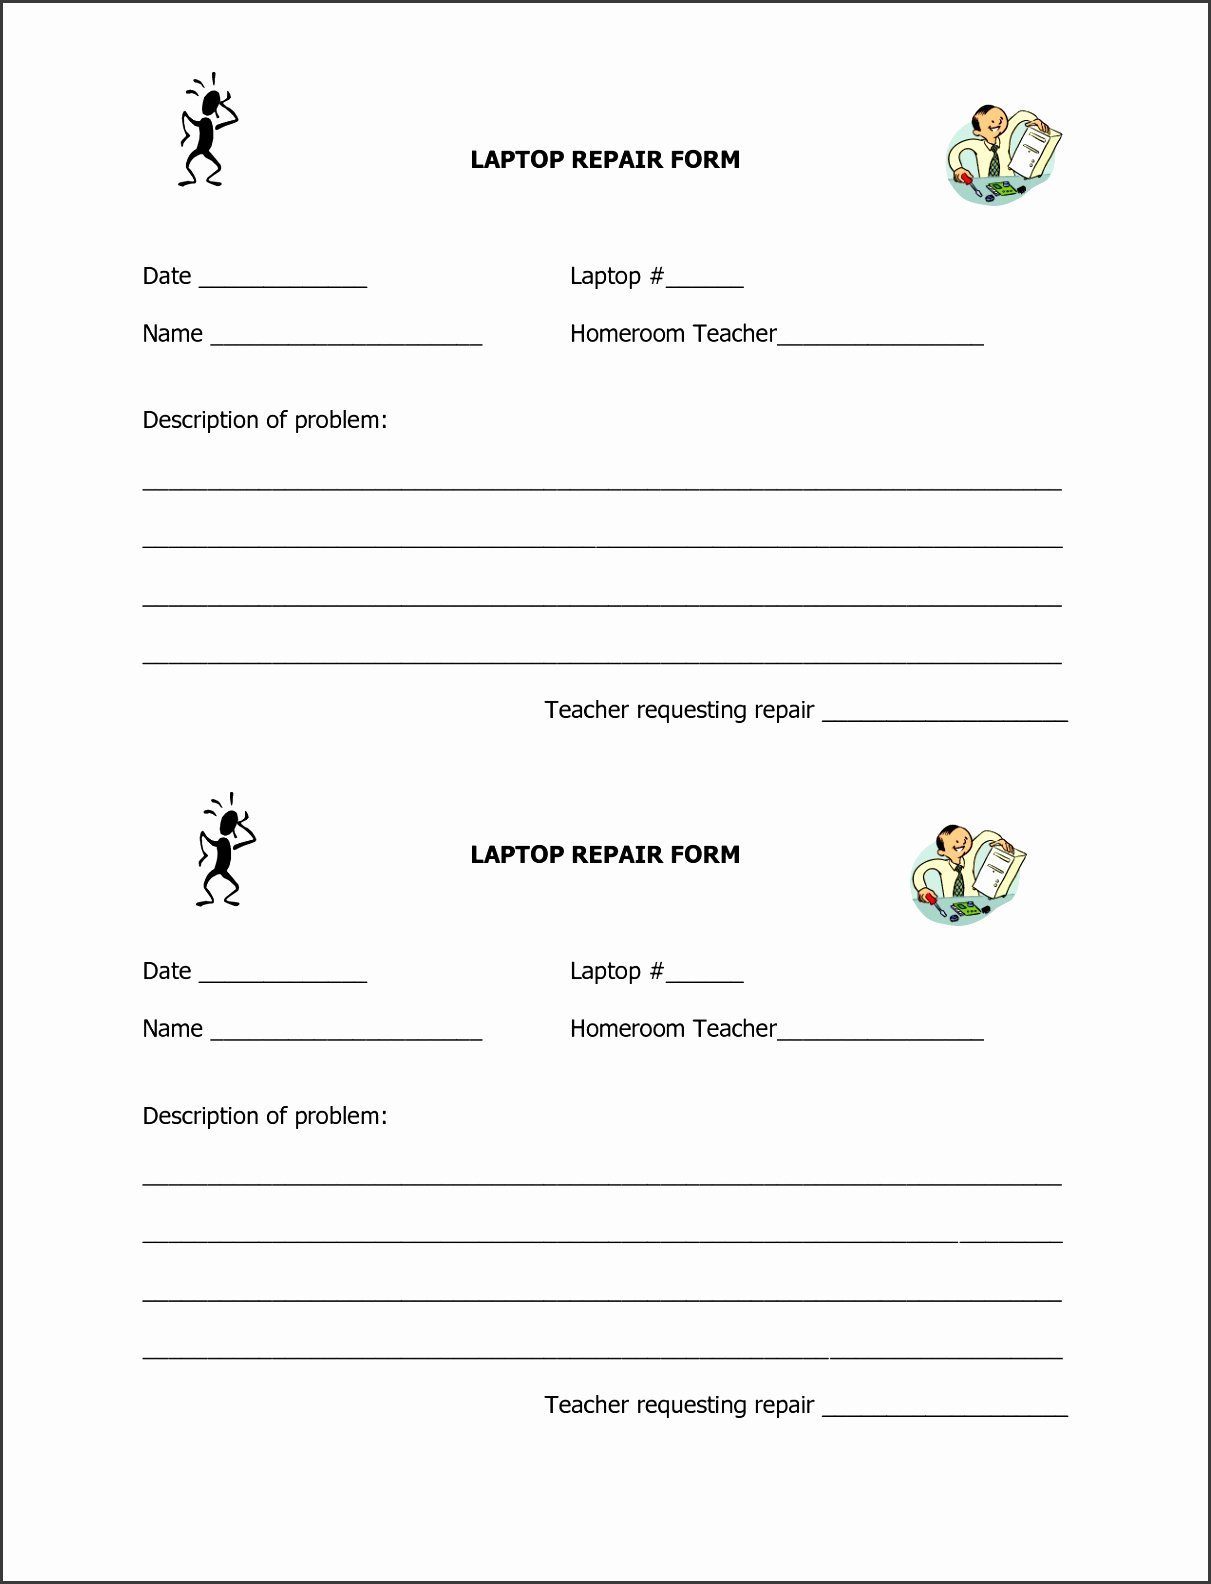 Computer Repair form Template Awesome 6 Puter Repair Request form Template Sampletemplatess